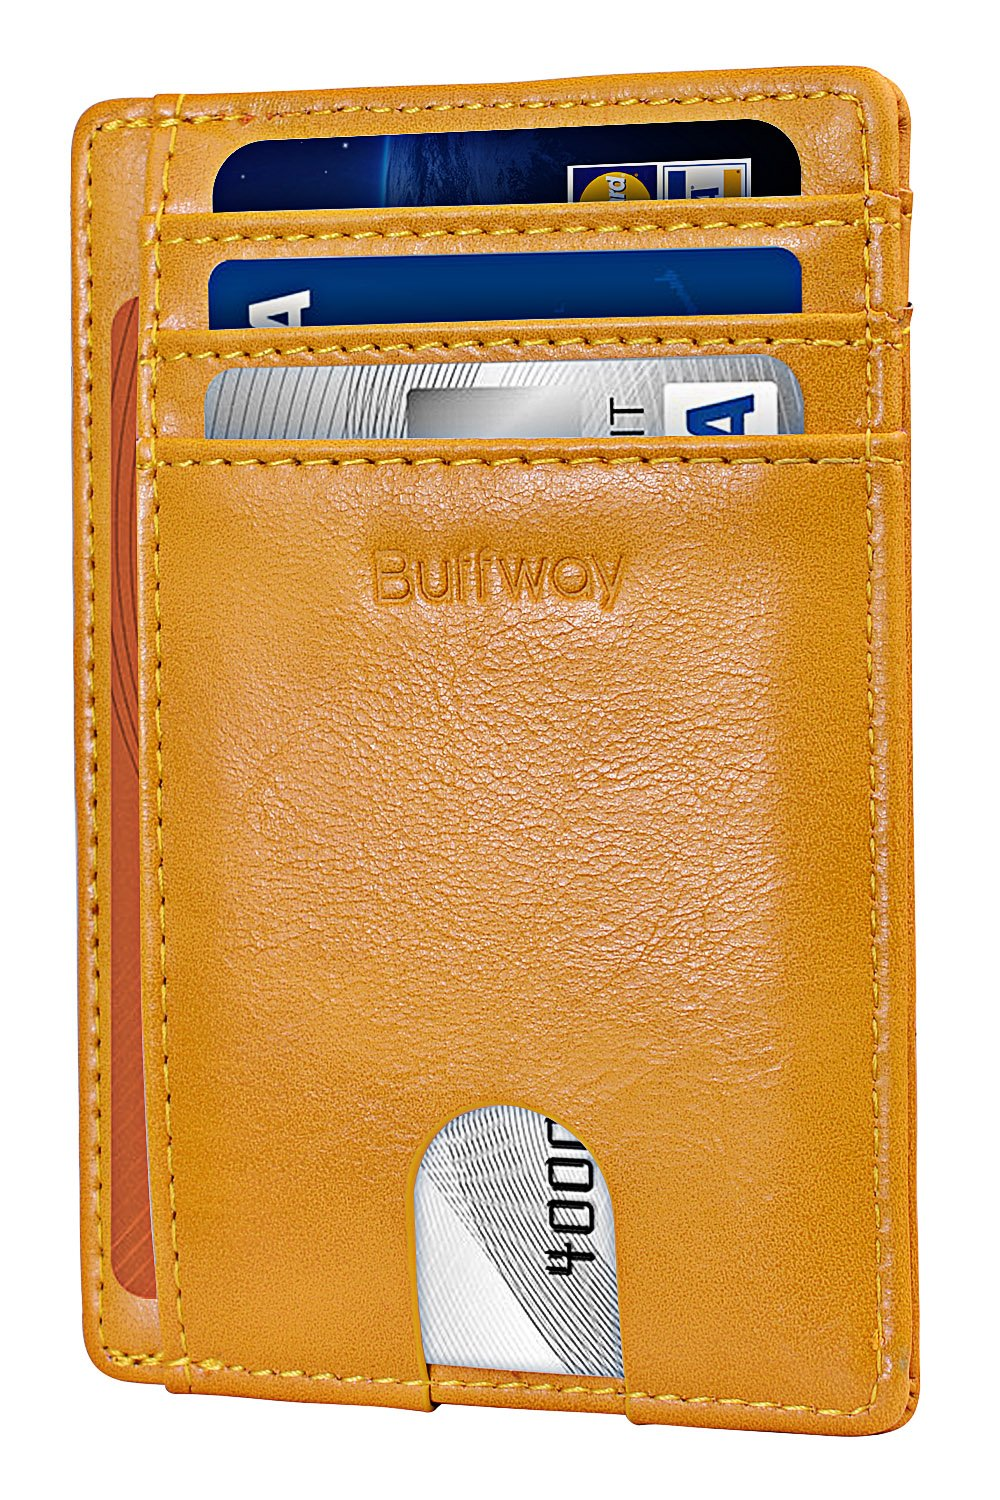 Slim Minimalist Leather Wallets for Men & Women - Alaska Yellow